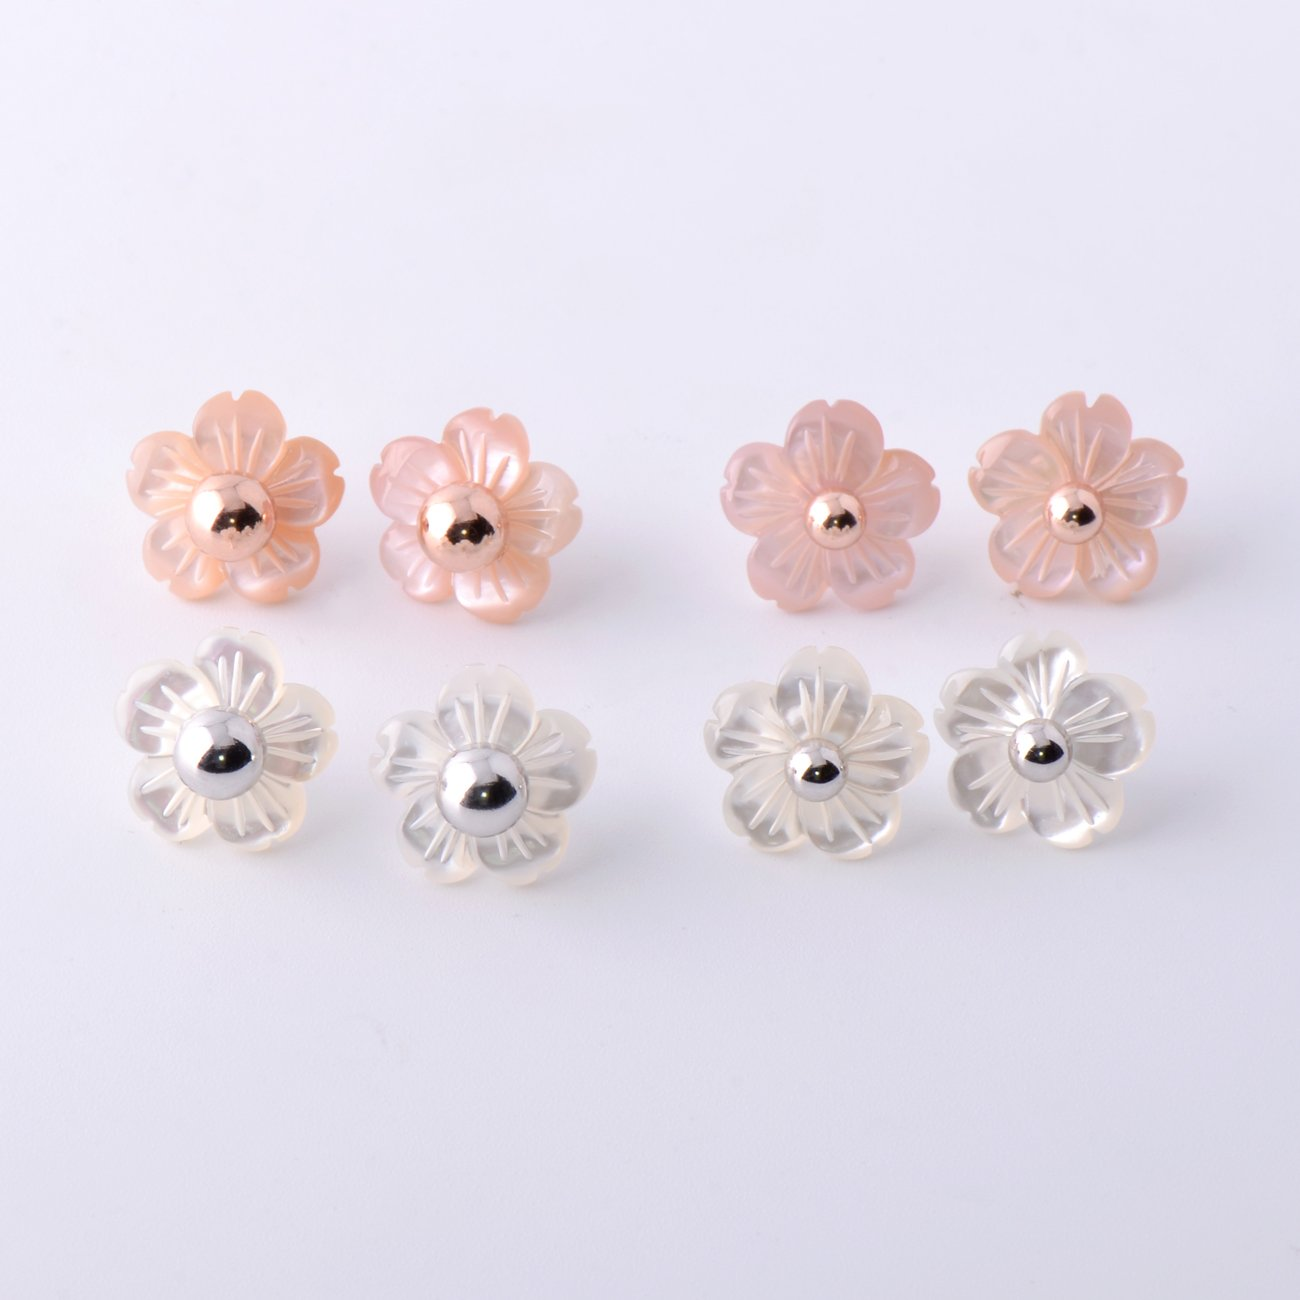 Paialco Mother of Pearl Flower Shape Earring Jackets Ball Silver Tone 6MM by Paialco (Image #4)